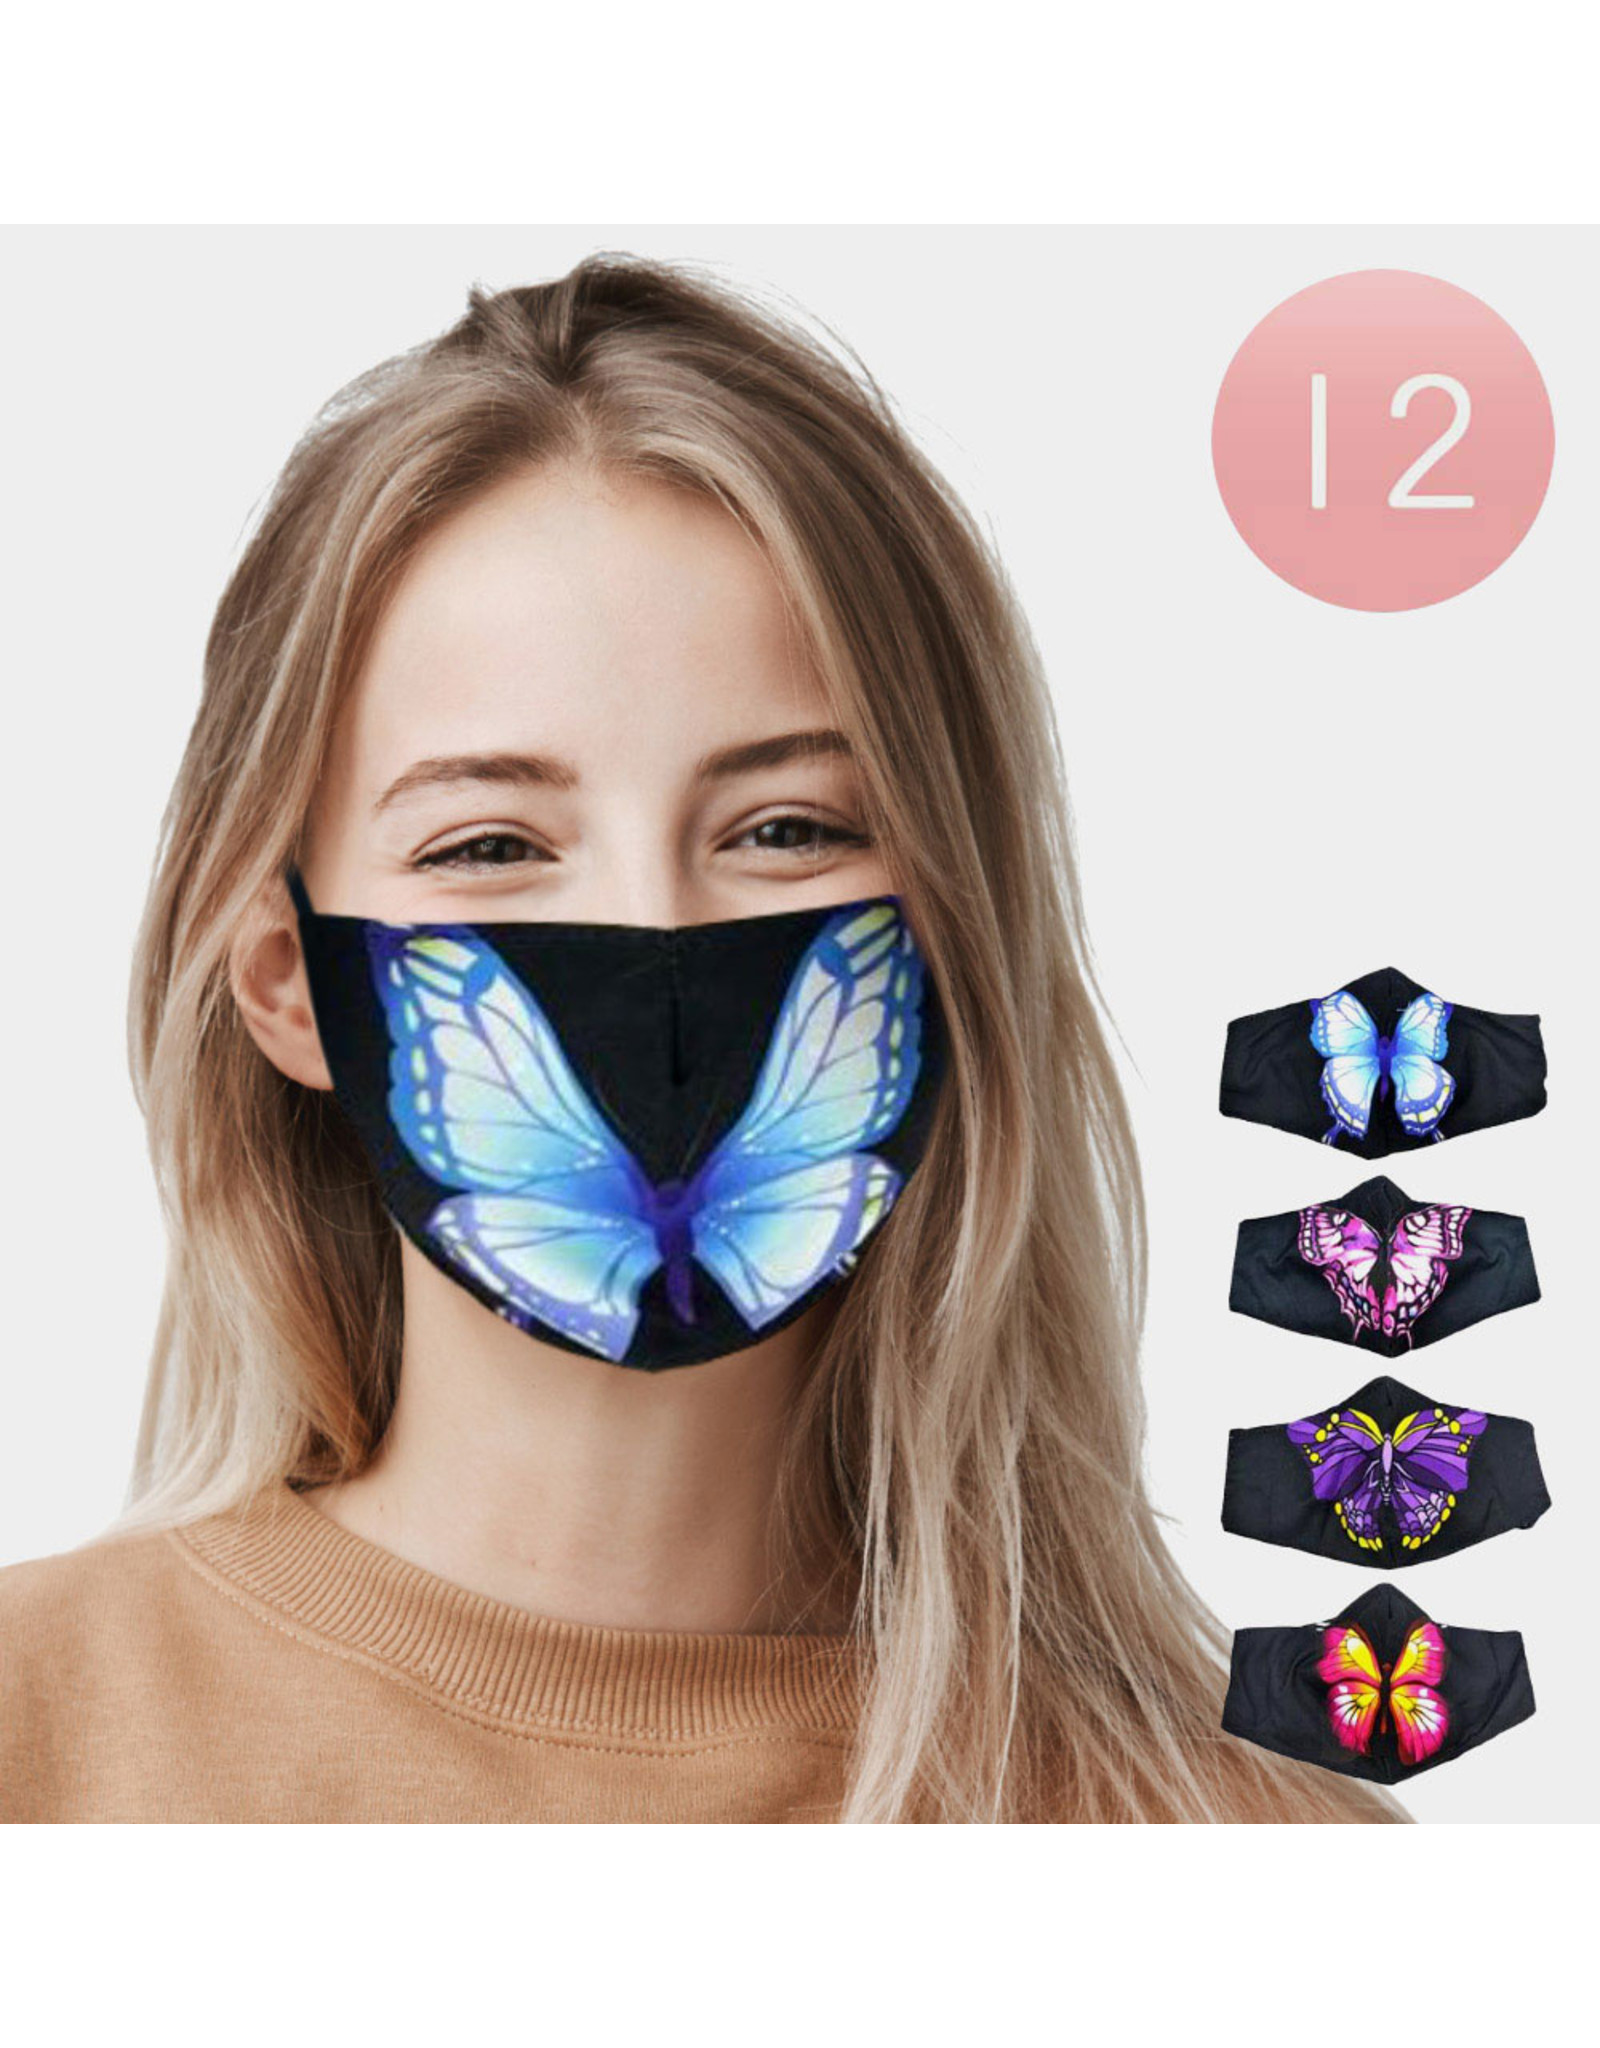 Butterfly Mask w/nose wire, adjustable ear loops & pocket for filter